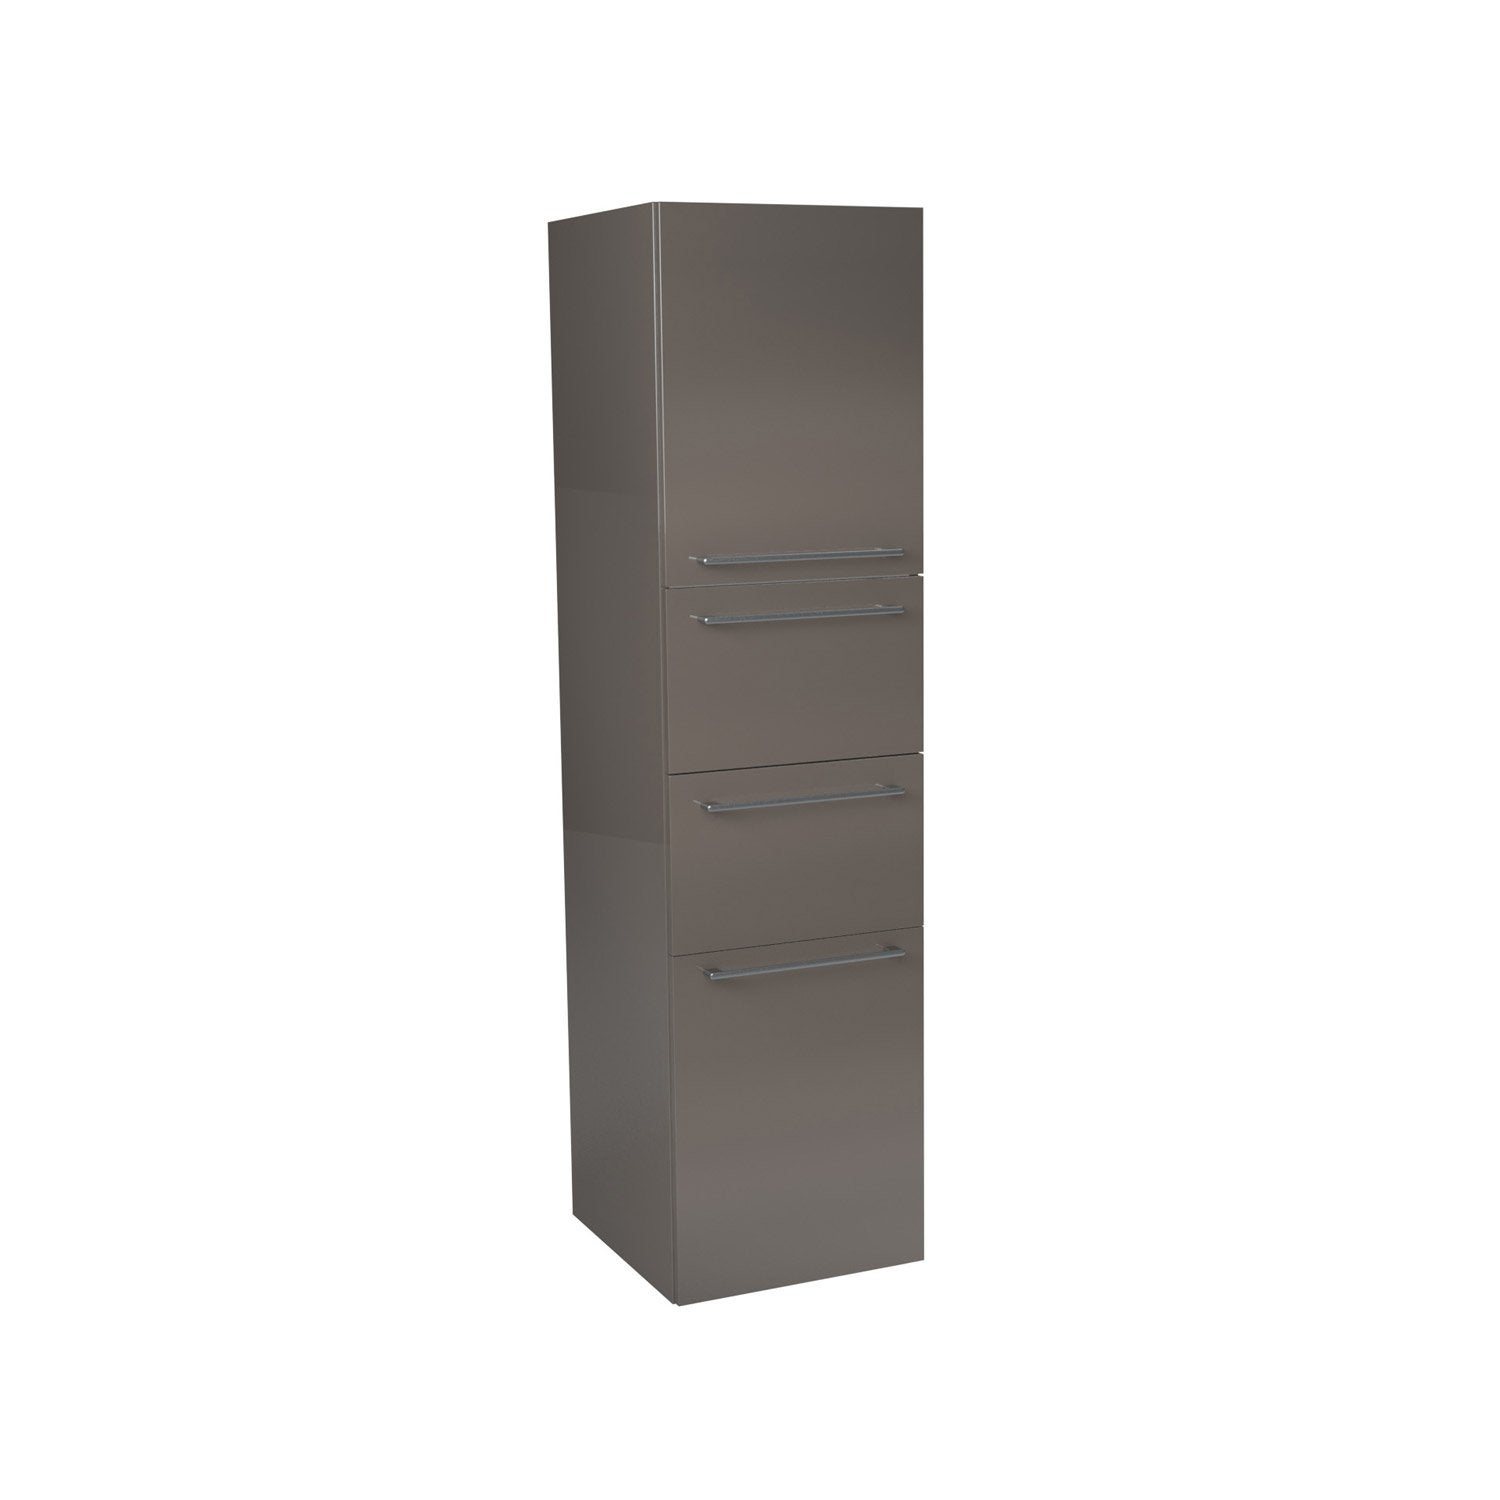 armoire wc leroy merlin stunning etagere wc castorama leroy merlin toilettes charmant armoires. Black Bedroom Furniture Sets. Home Design Ideas